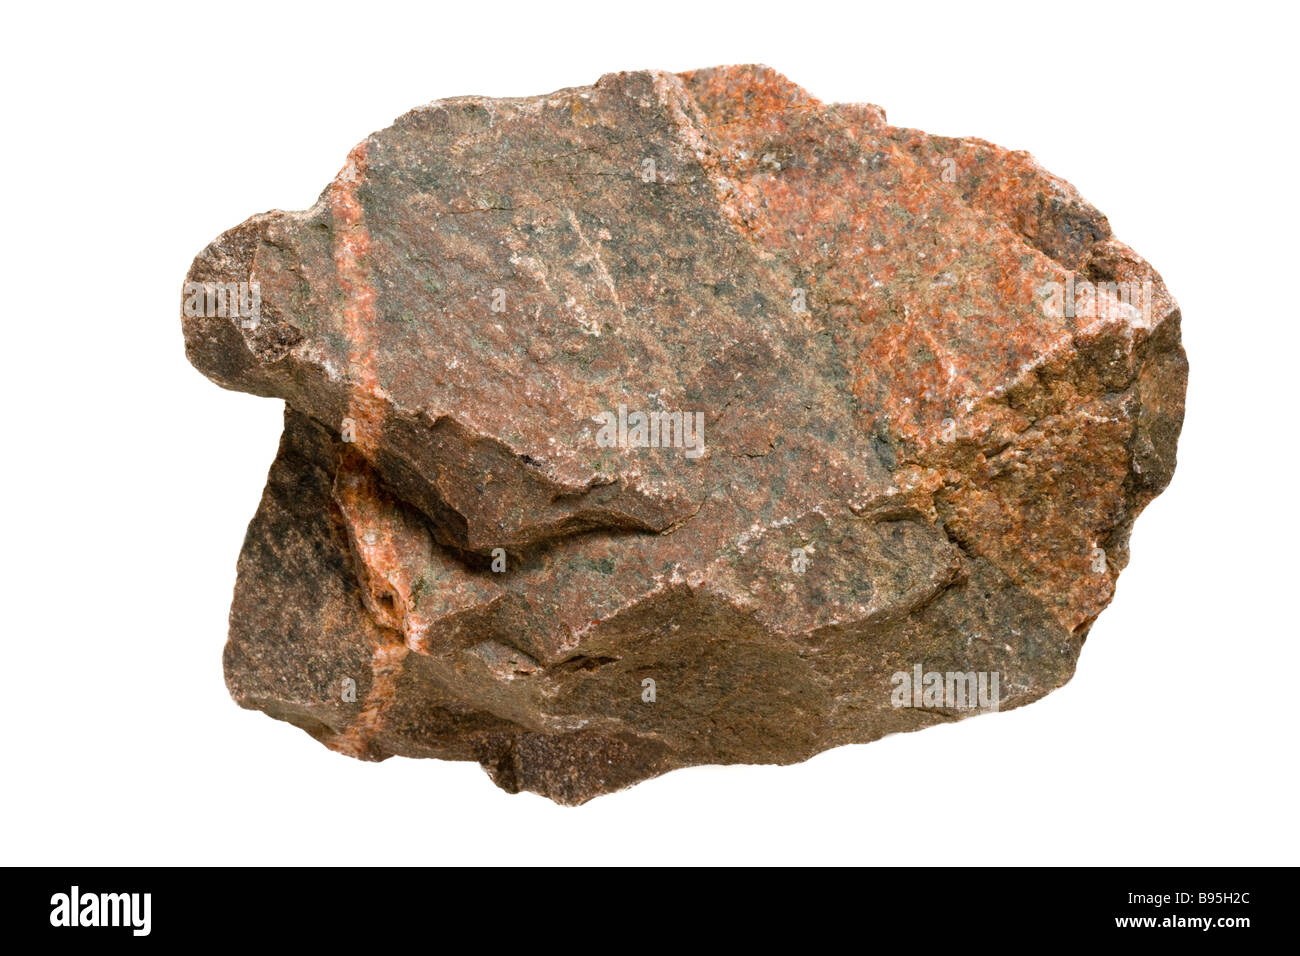 Rock, cut-out. - Stock Image